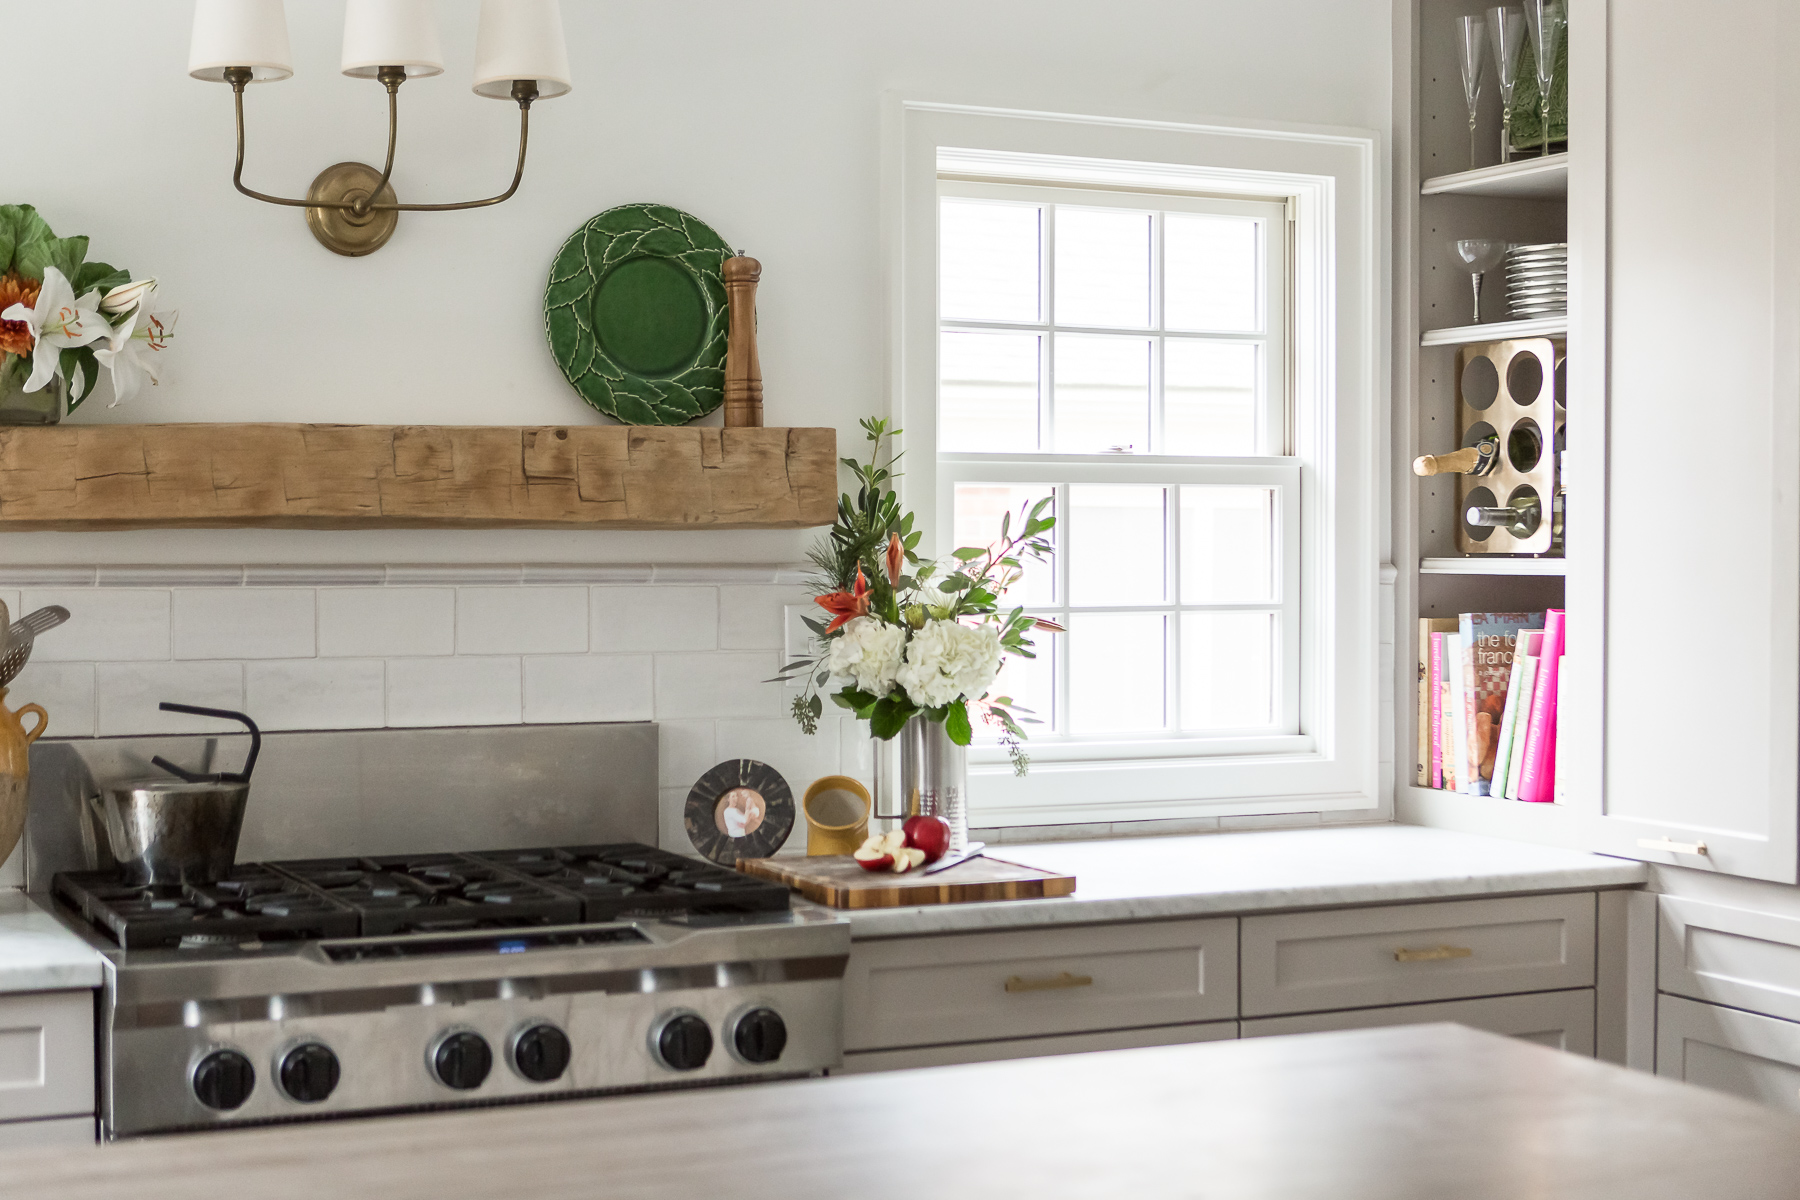 scovell wolfe kitchen in brookside with jeldwin windows, elmwood reclaimed timber mantle